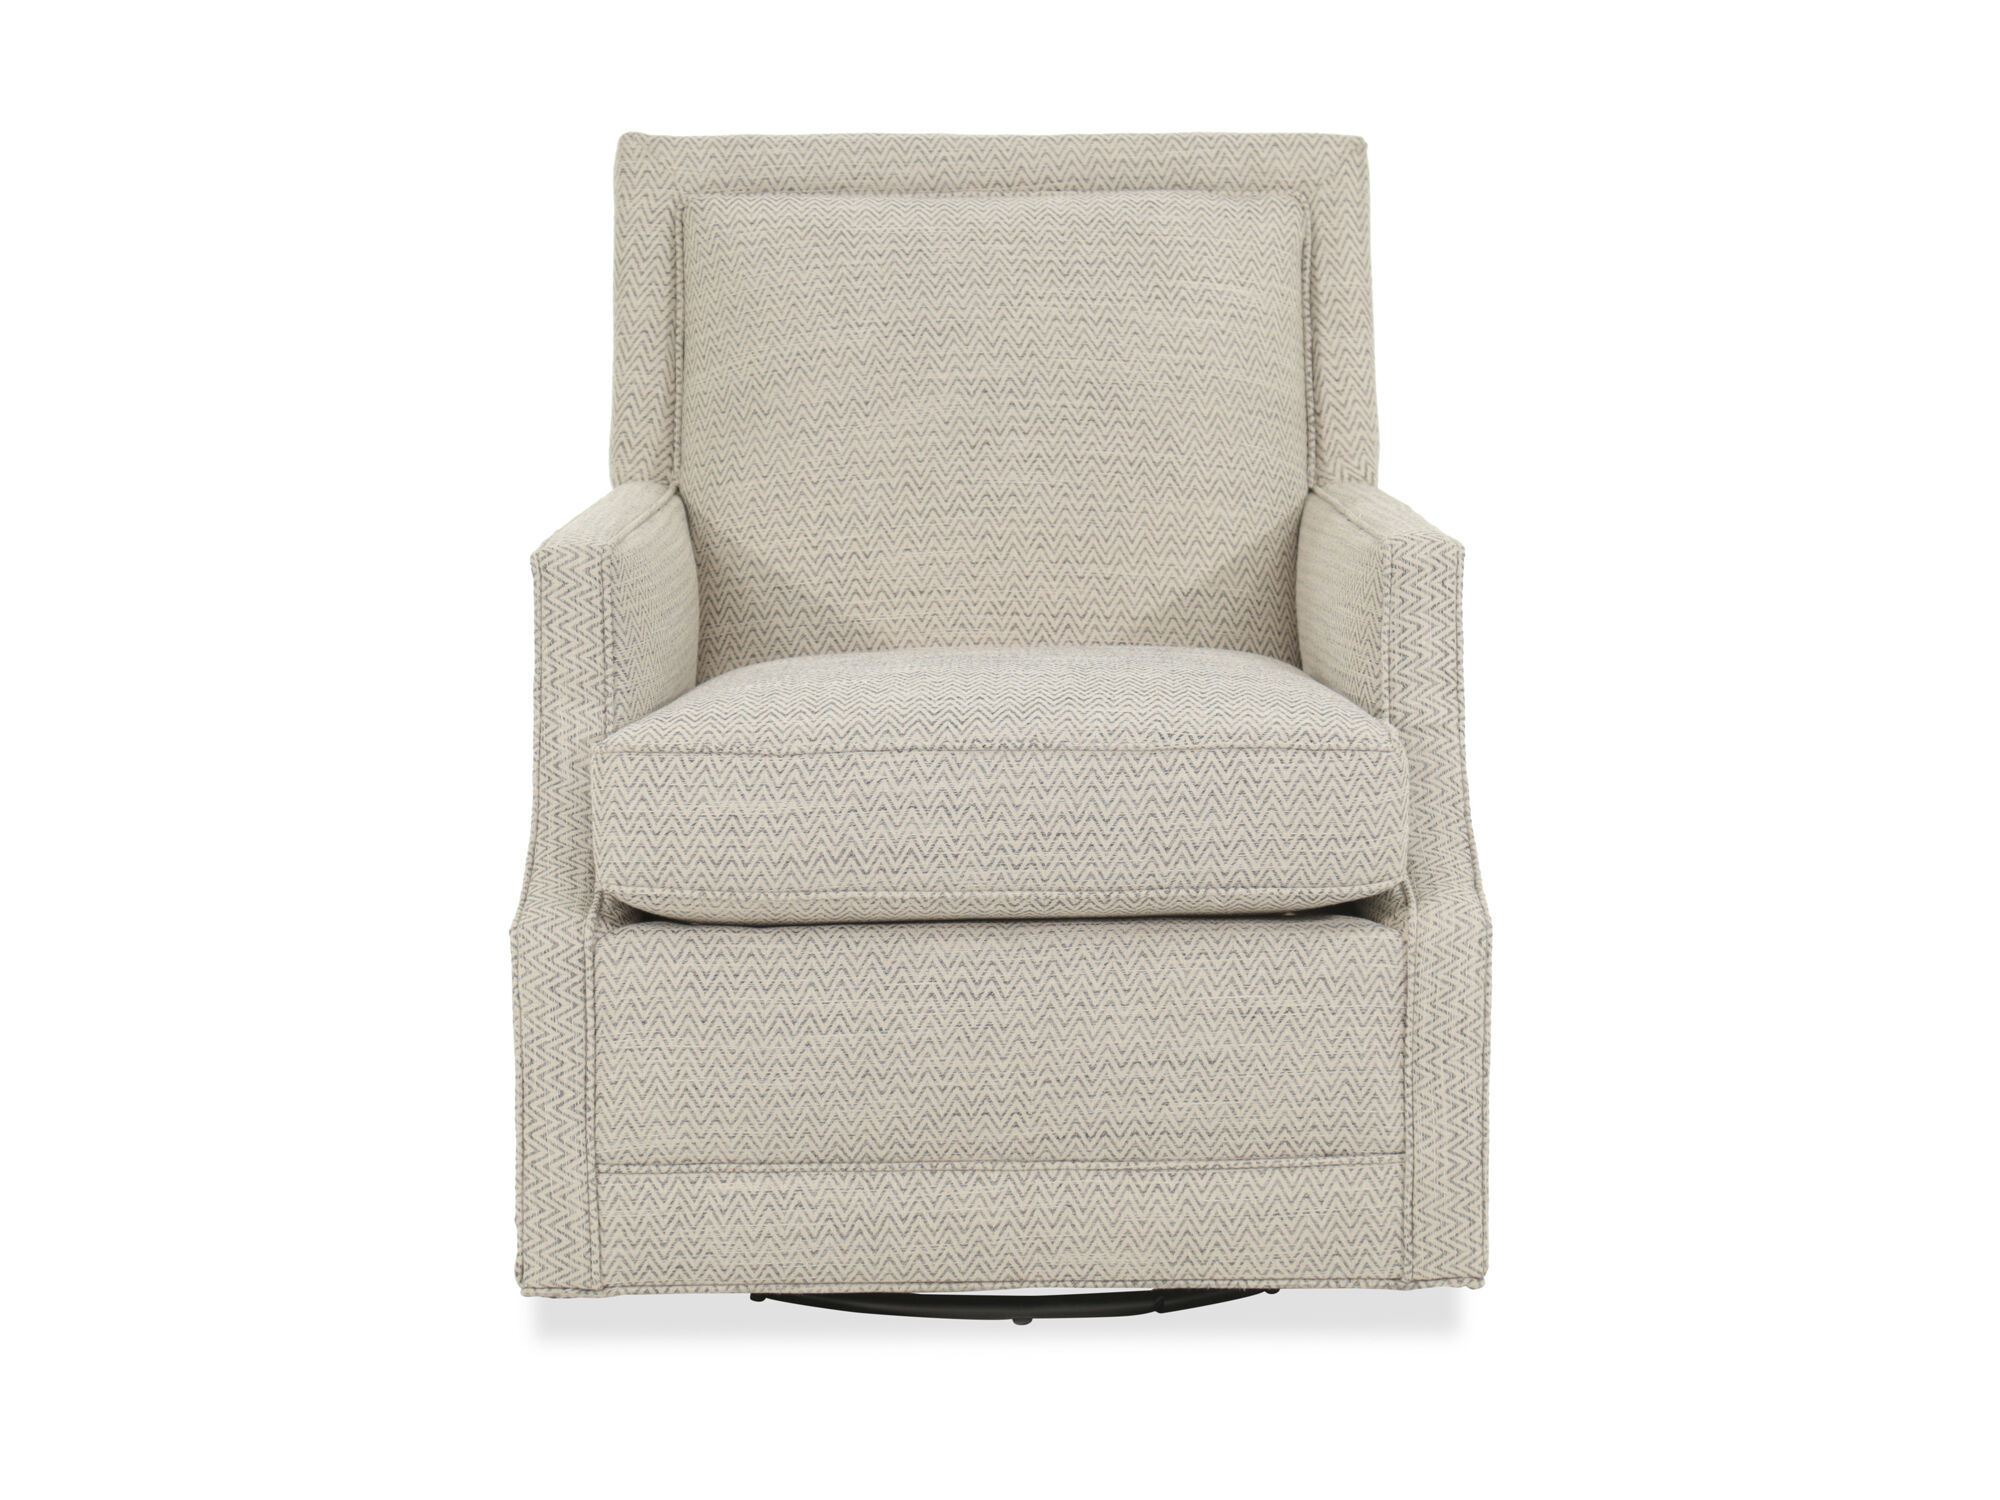 Genial Images Wave Patterned Transitional 27.5u0026quot; Swivel Glider Chair In Cream  Wave Patterned Transitional 27.5u0026quot; Swivel Glider Chair In Cream